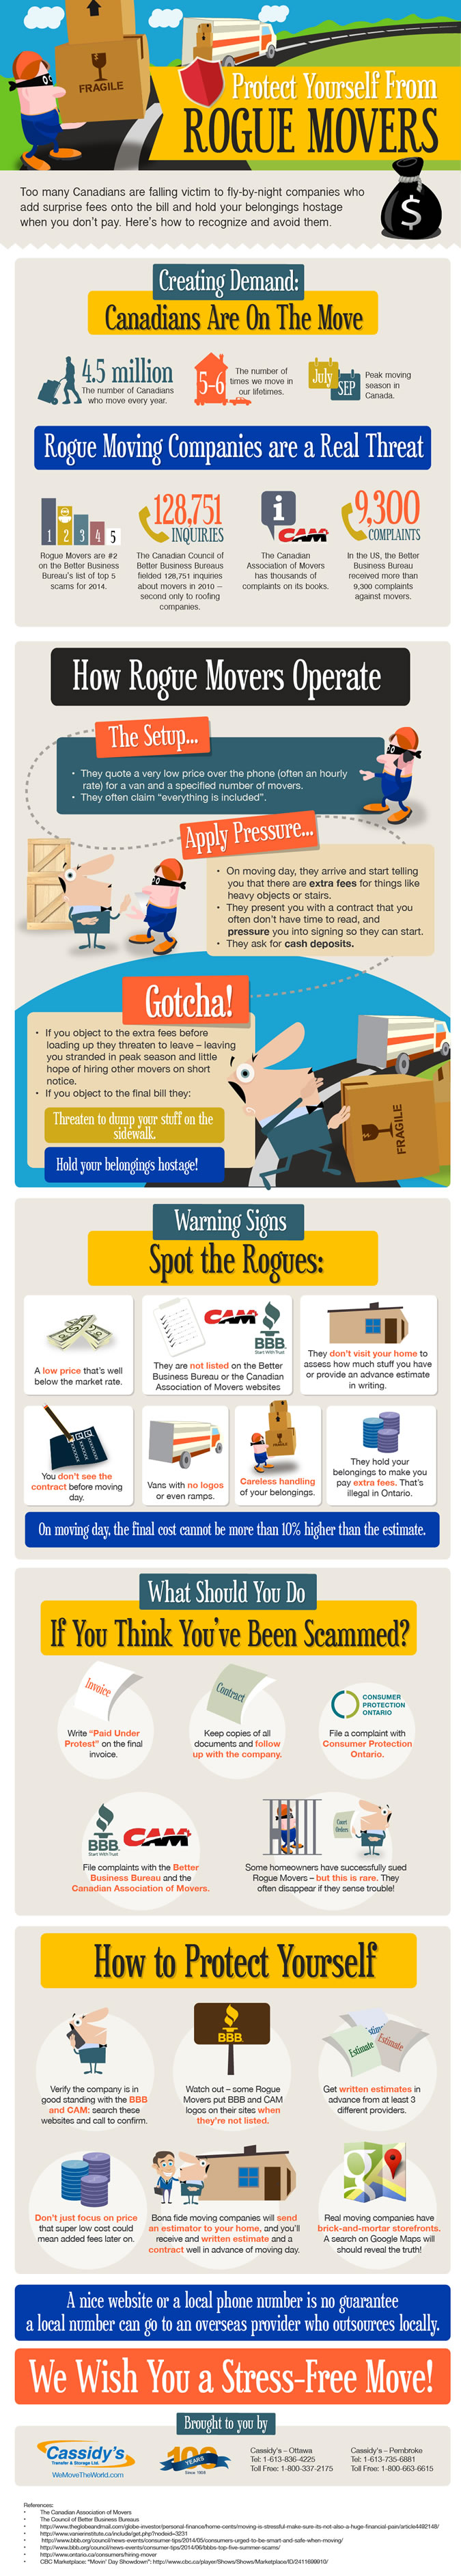 Protect Yourself From Rogue Movers